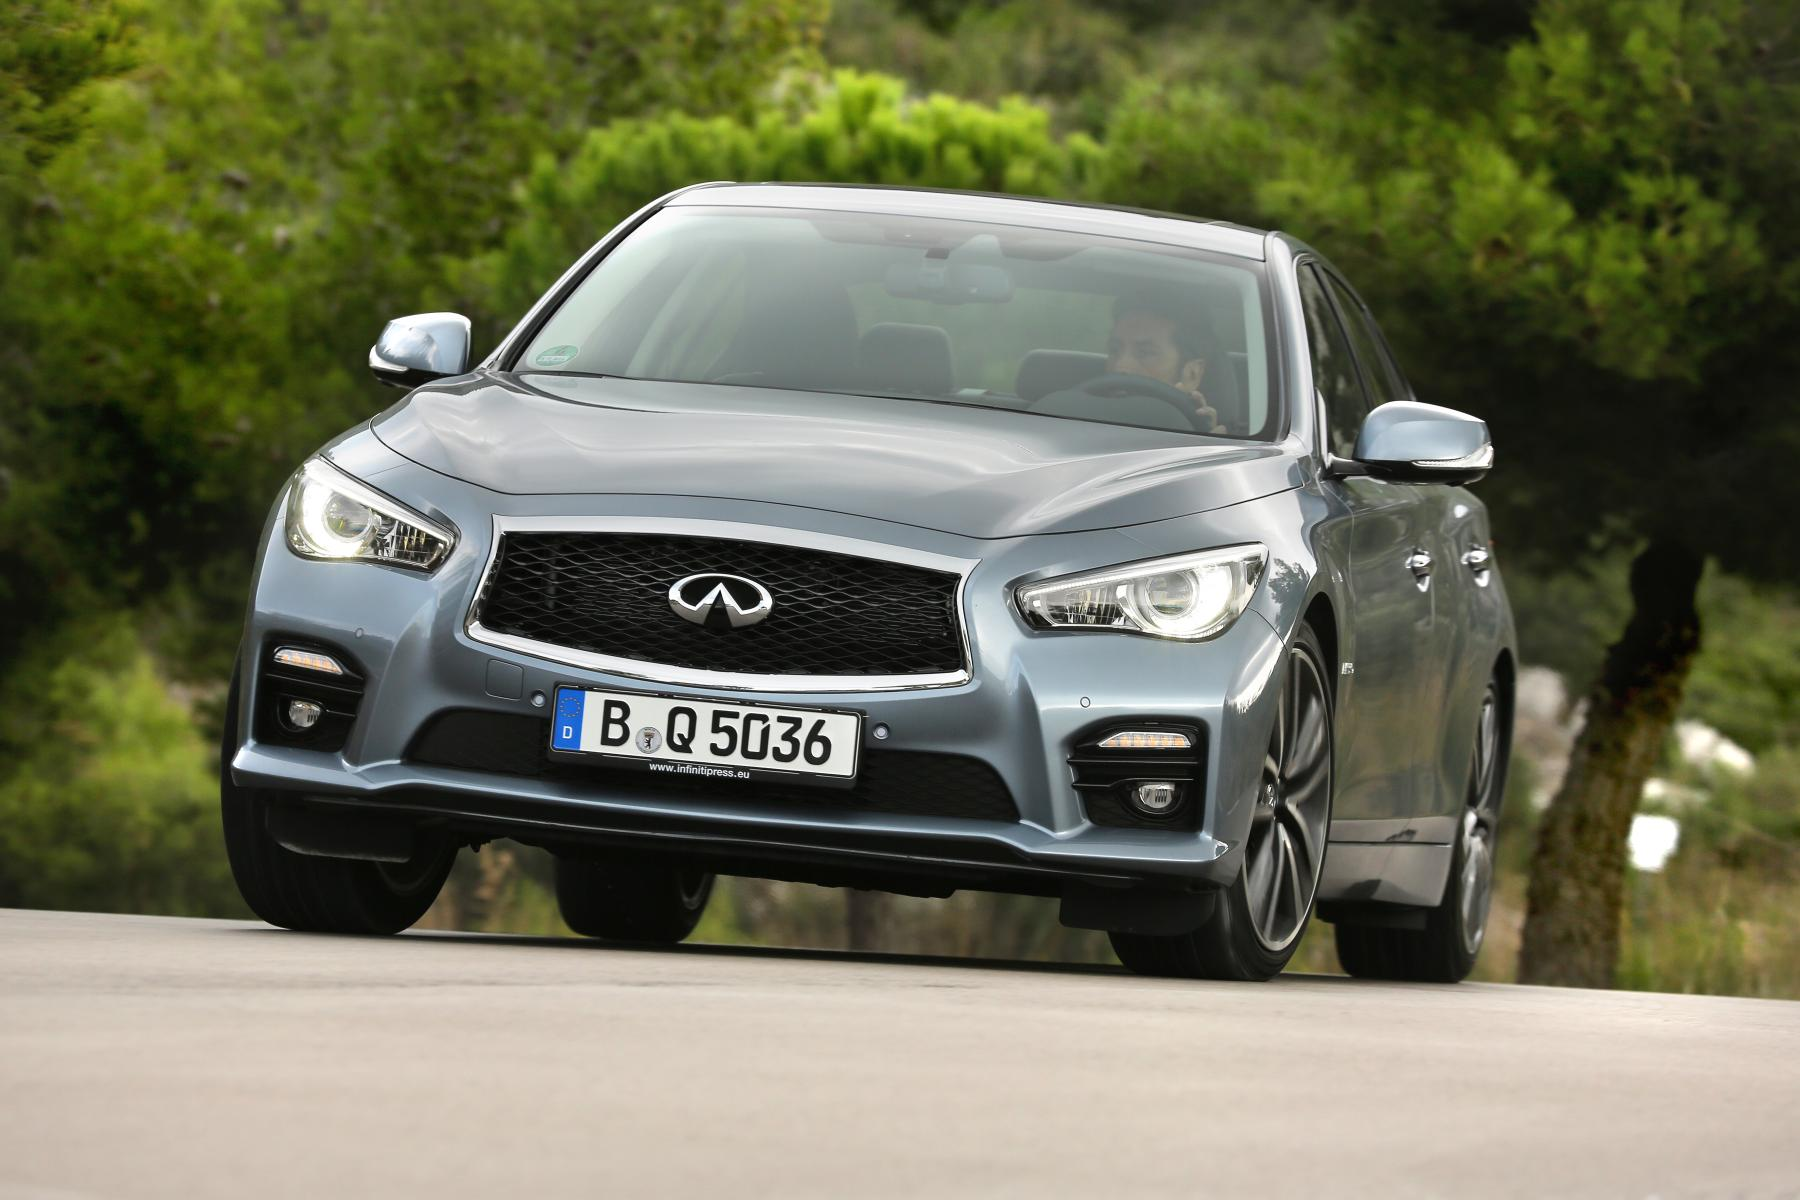 Infiniti Q50 Listed Among Most Hackable Cars, Nissan to Investigate